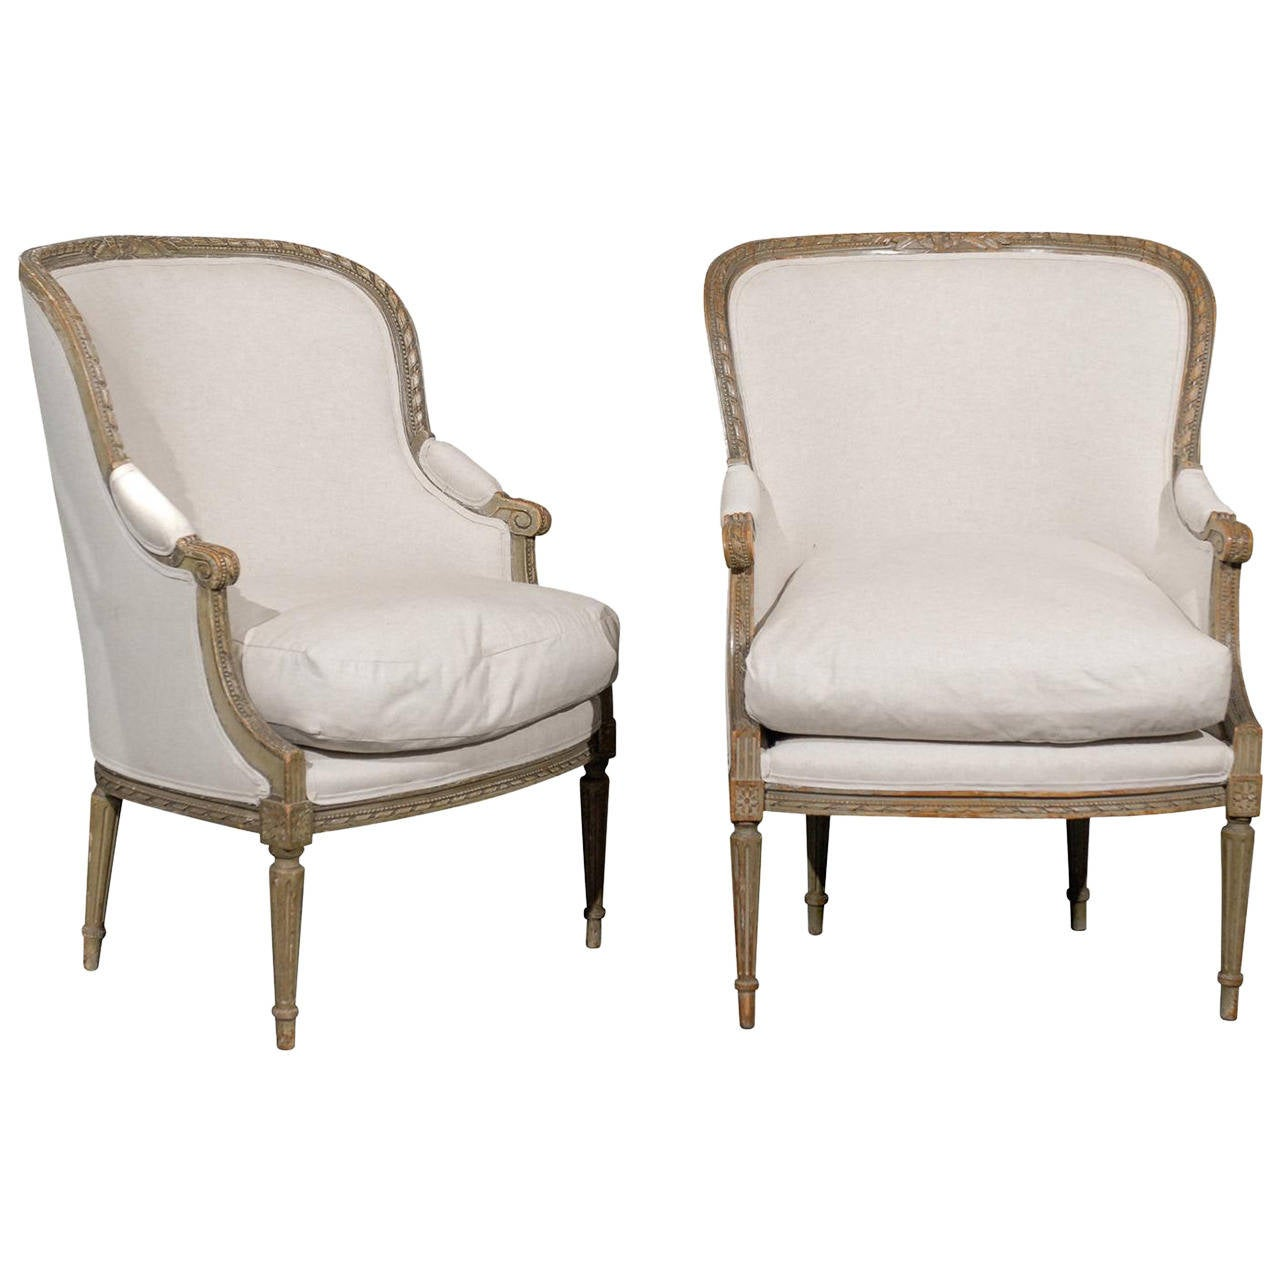 Pair of French 19th Century Louis XVI Style Bergères Chairs 1